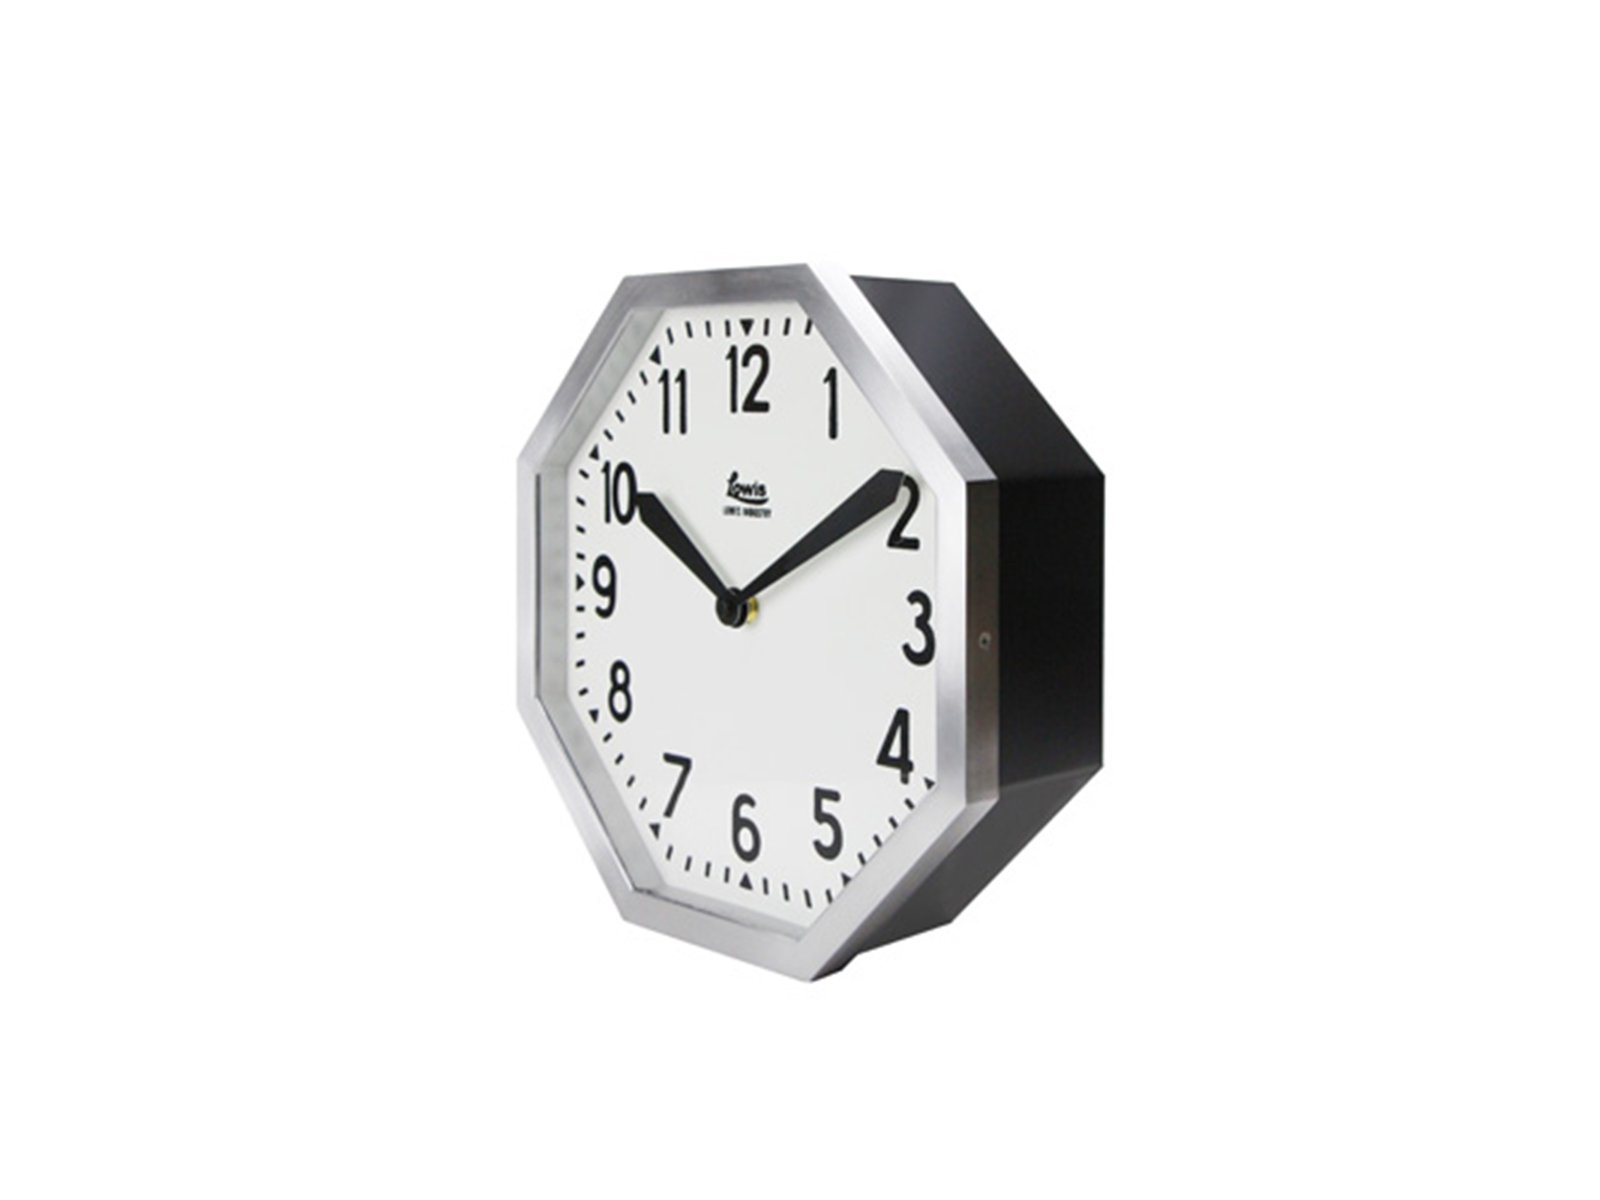 DETAIL/Lowis Industry Octagon Clock ルイスインダストリーオクタゴンクロック 壁掛け時計【送料無料】【画像2】